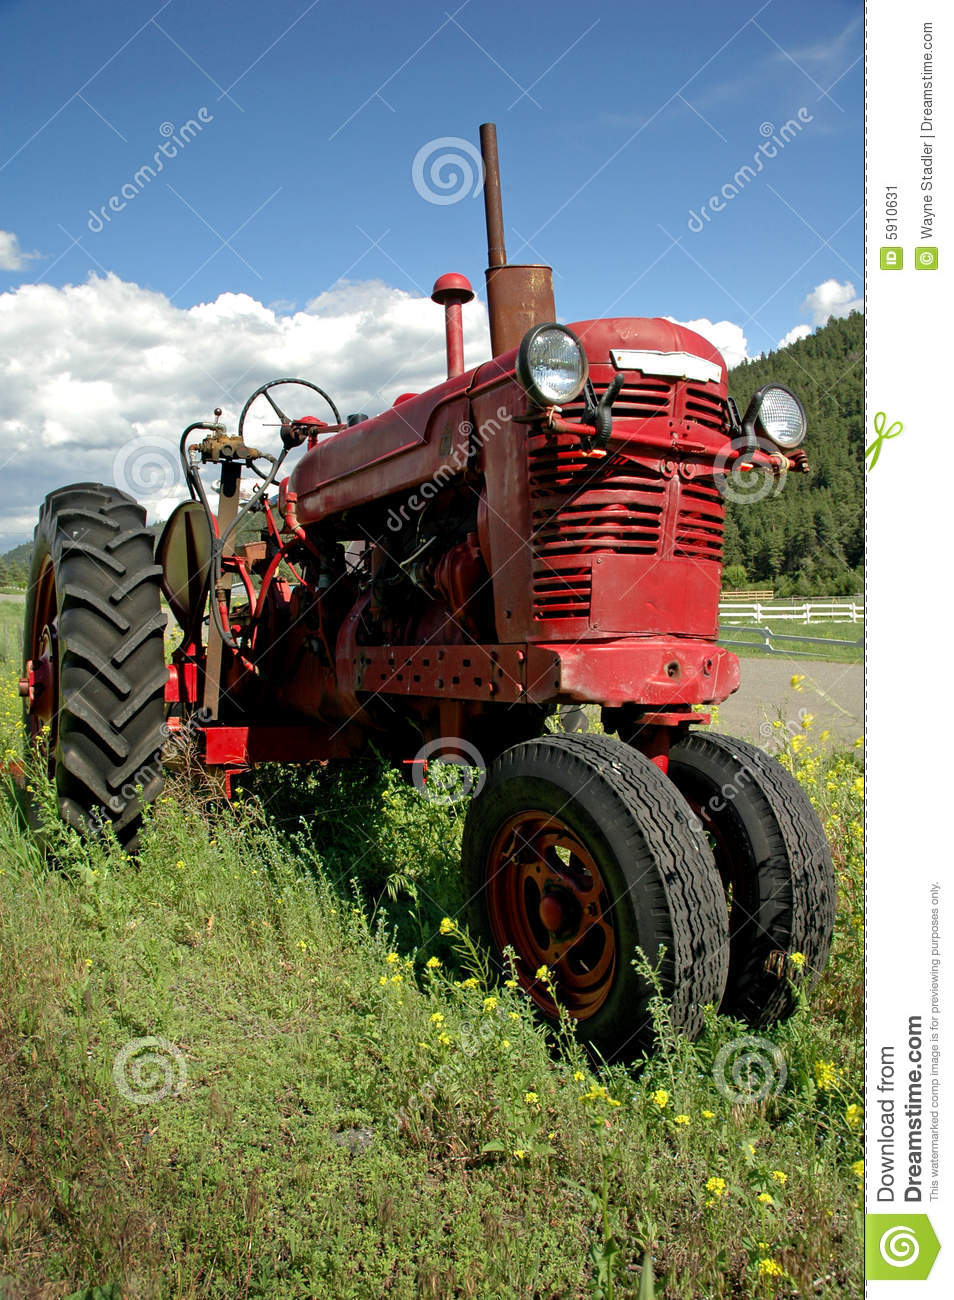 Old Red Farm Tractor Stock Image. Image Of Farms, Crop